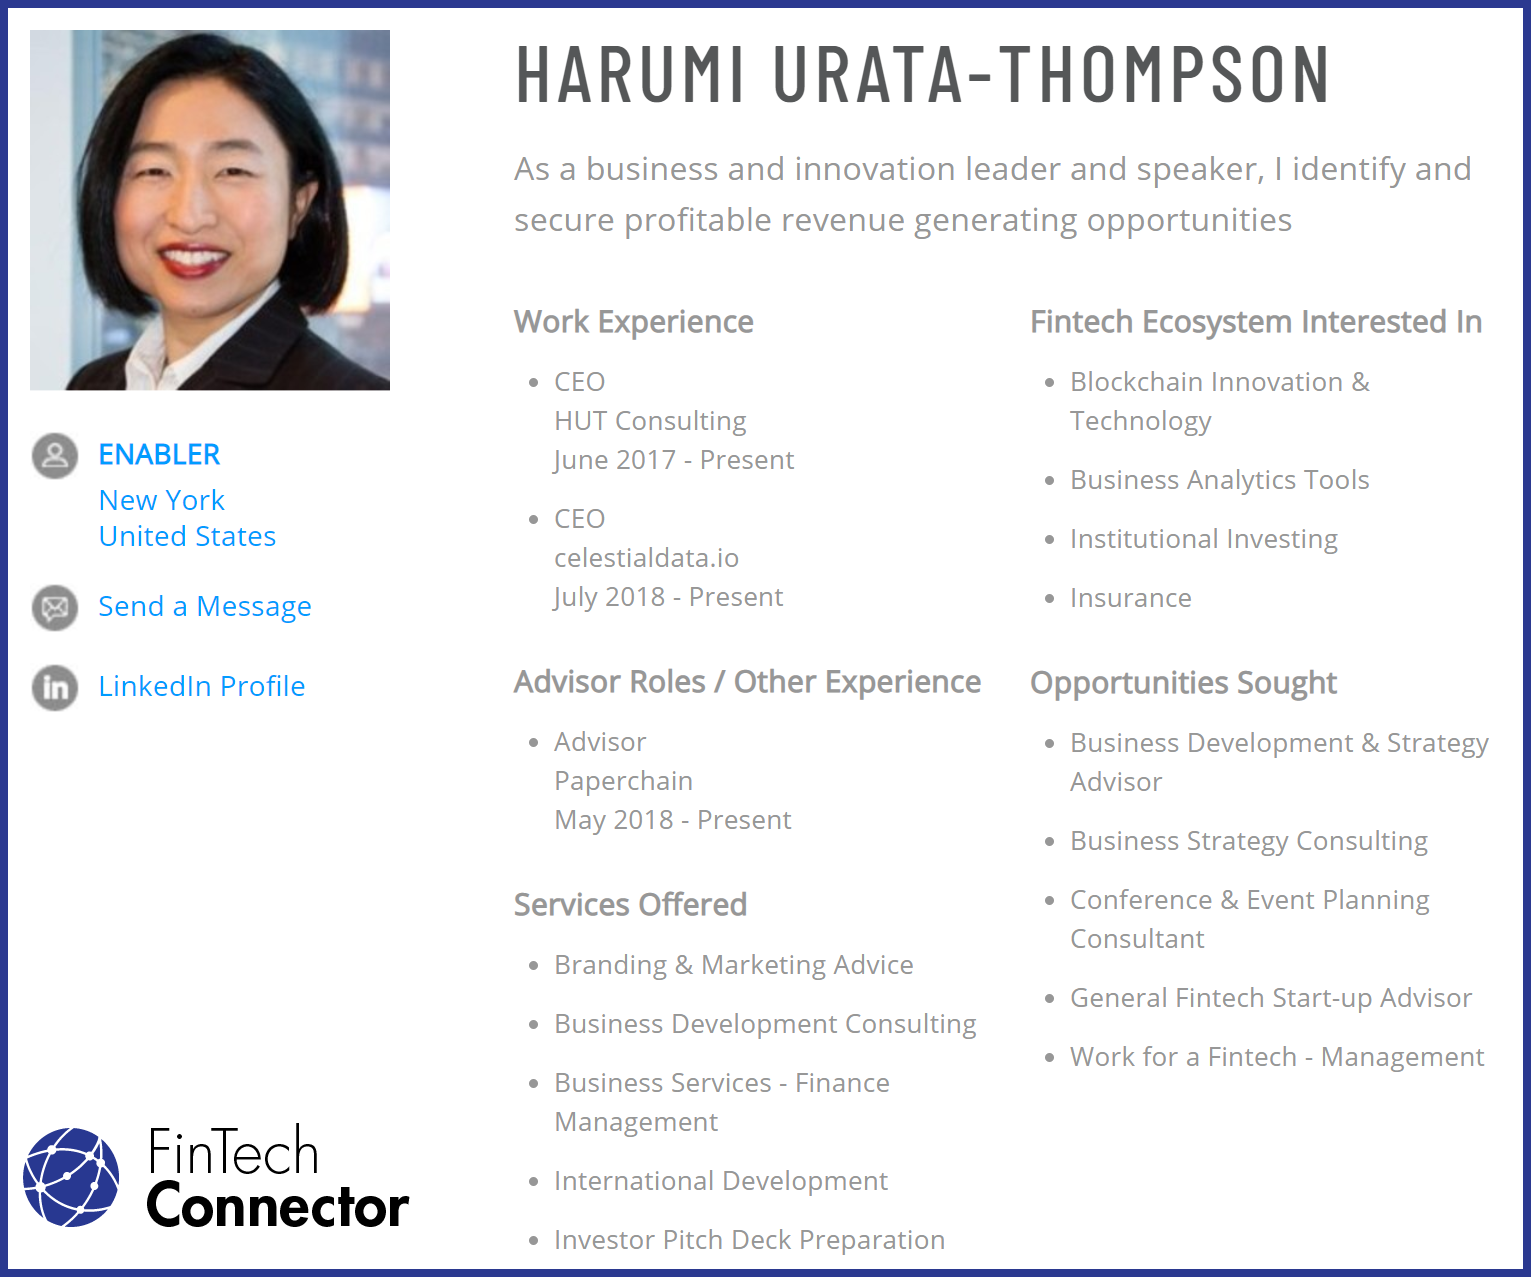 Connect with Harumi Urata-Thompson via FinTech Connector